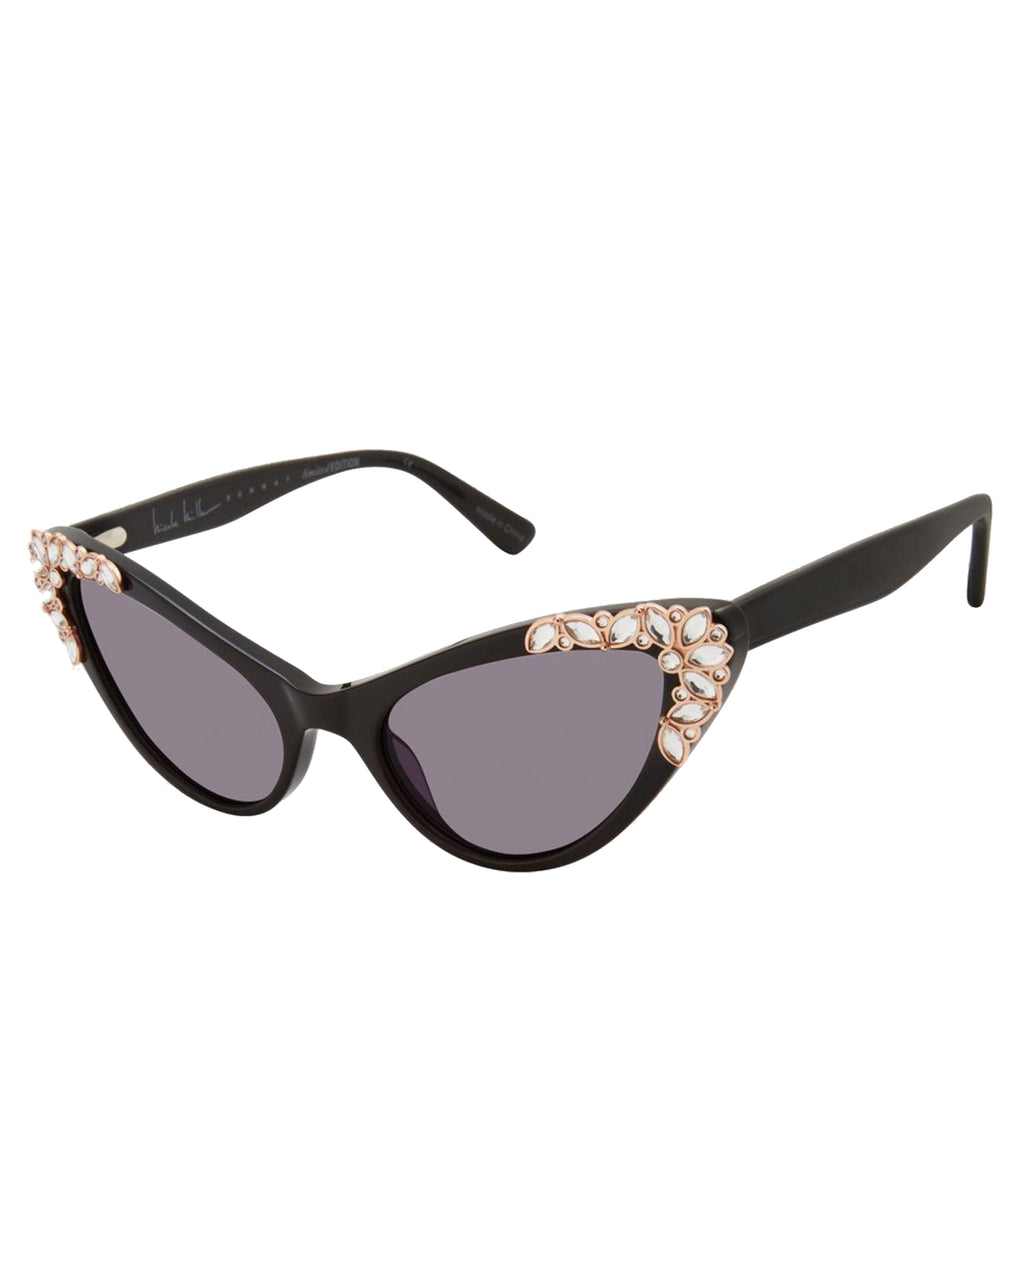 NMPROVE - PROVENCE RUNWAY SUNGLASSES - accessories - sunglasses - THESE BLACK CATEYE SUNGLASSES FEATURE CRYSTALS ALONG THE RIM. STRAIGHT FROM THE RUNWAY. 100% UVA/UVB